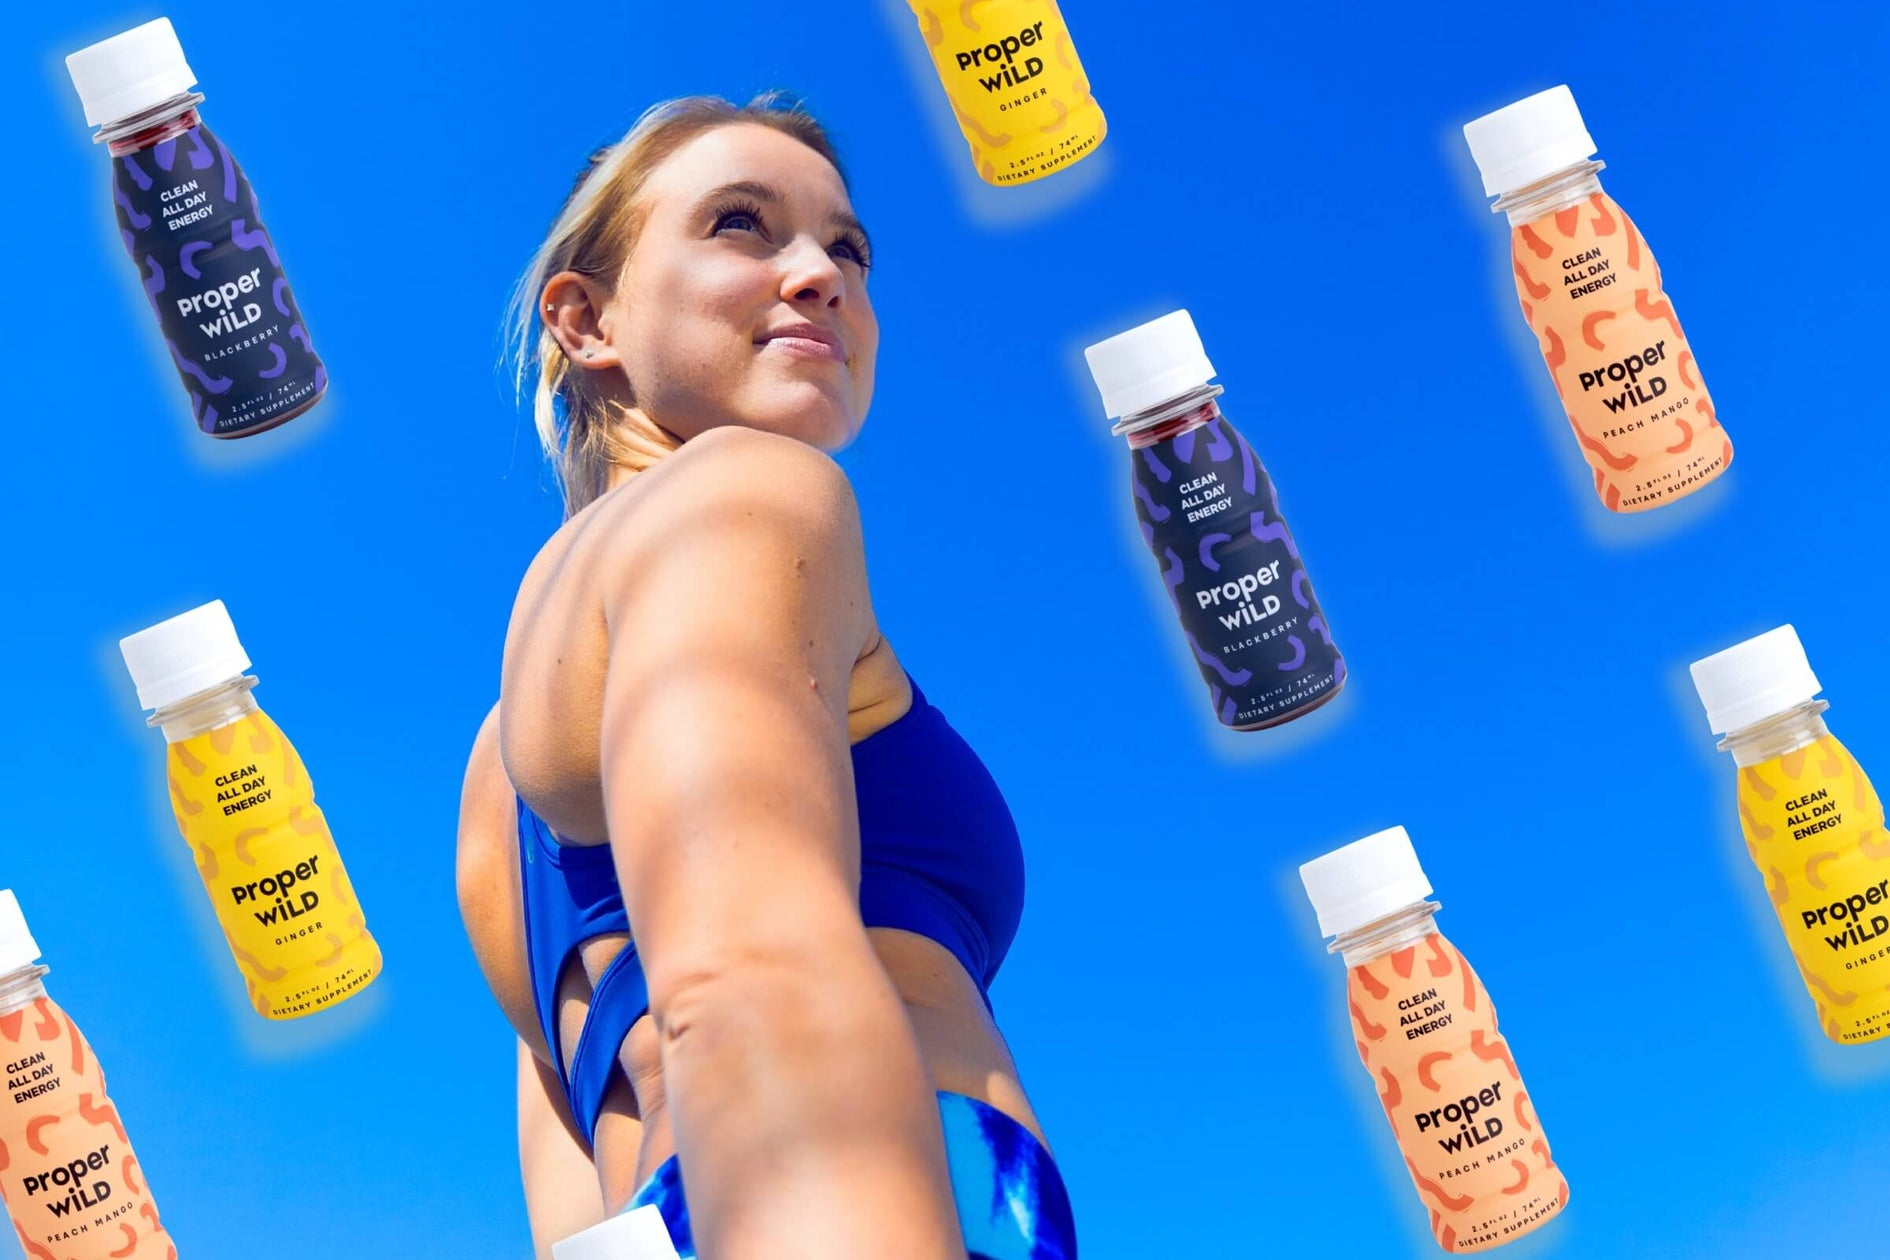 6 Ways Natural Energy Shots Help You Achieve Fitness Goals